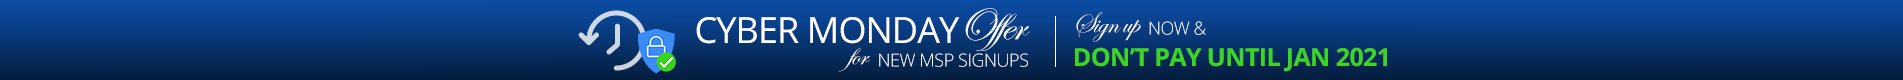 MSP-Banner-Cyber-Monday-2020